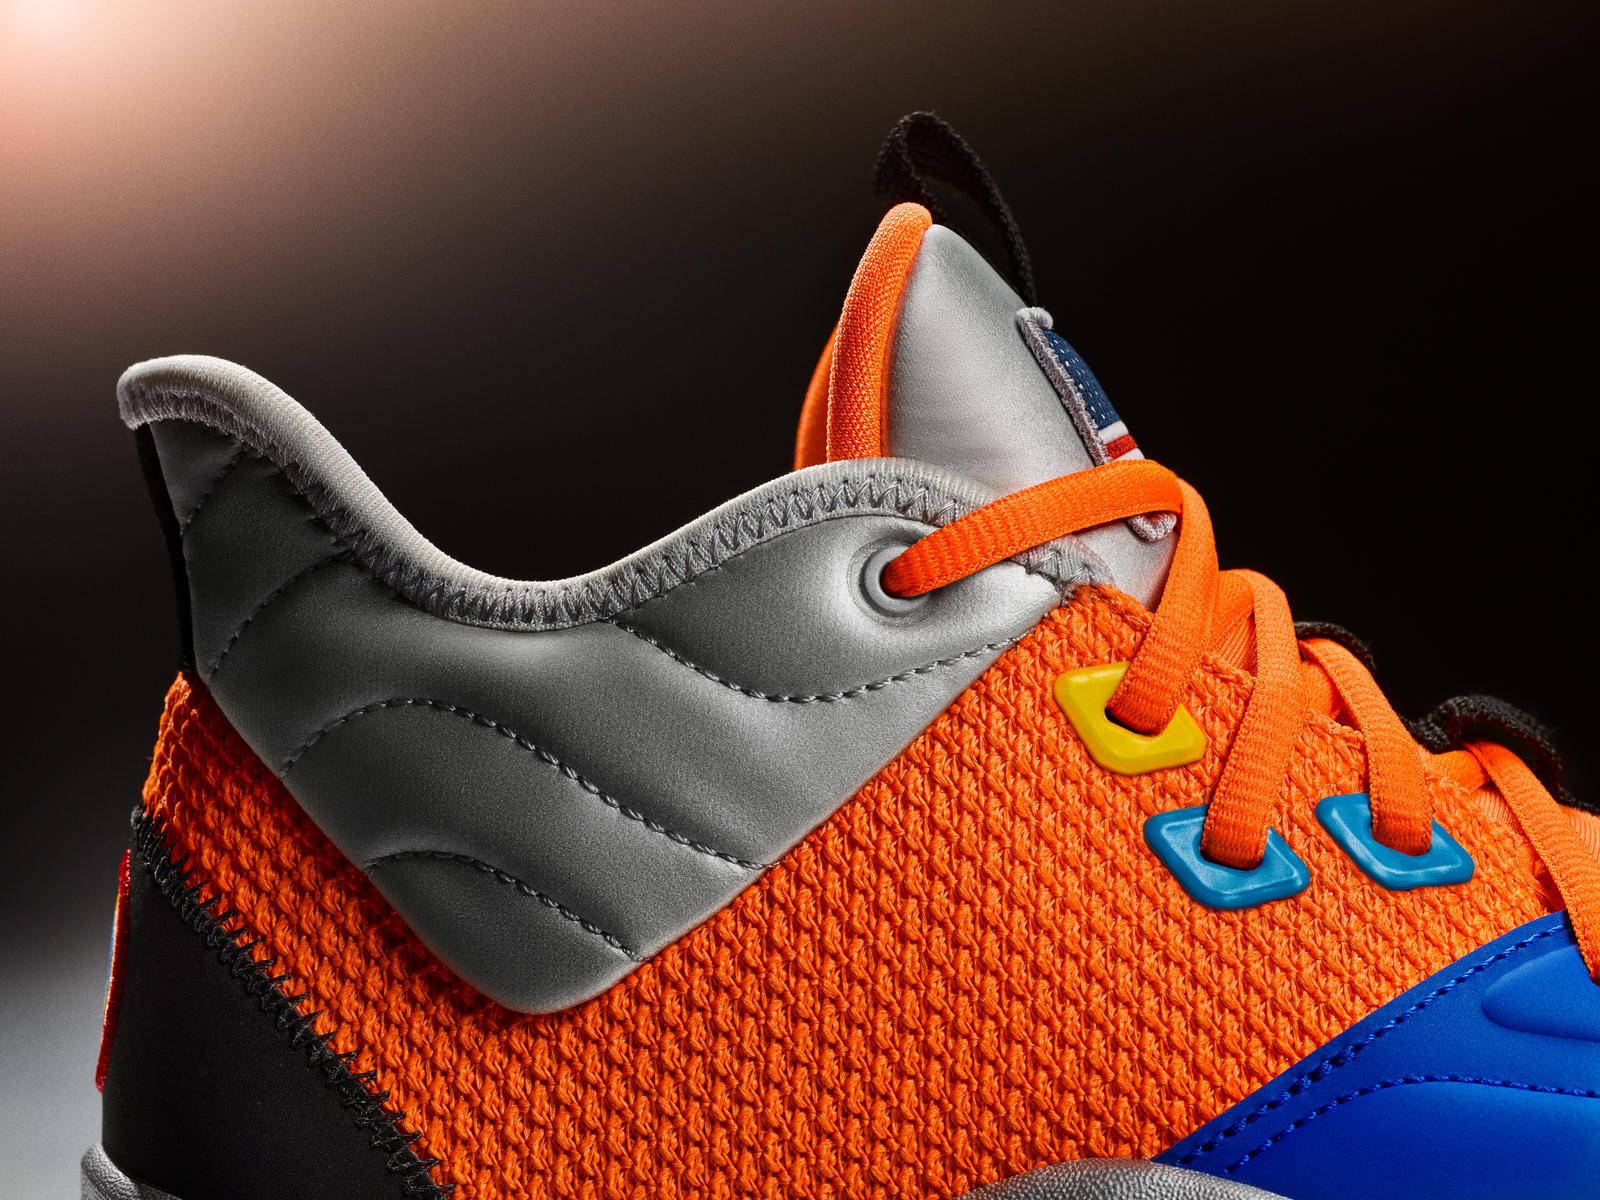 huge discount 195f1 fddd5 Introducing Paul George s Third Signature Shoe, the PG3 5